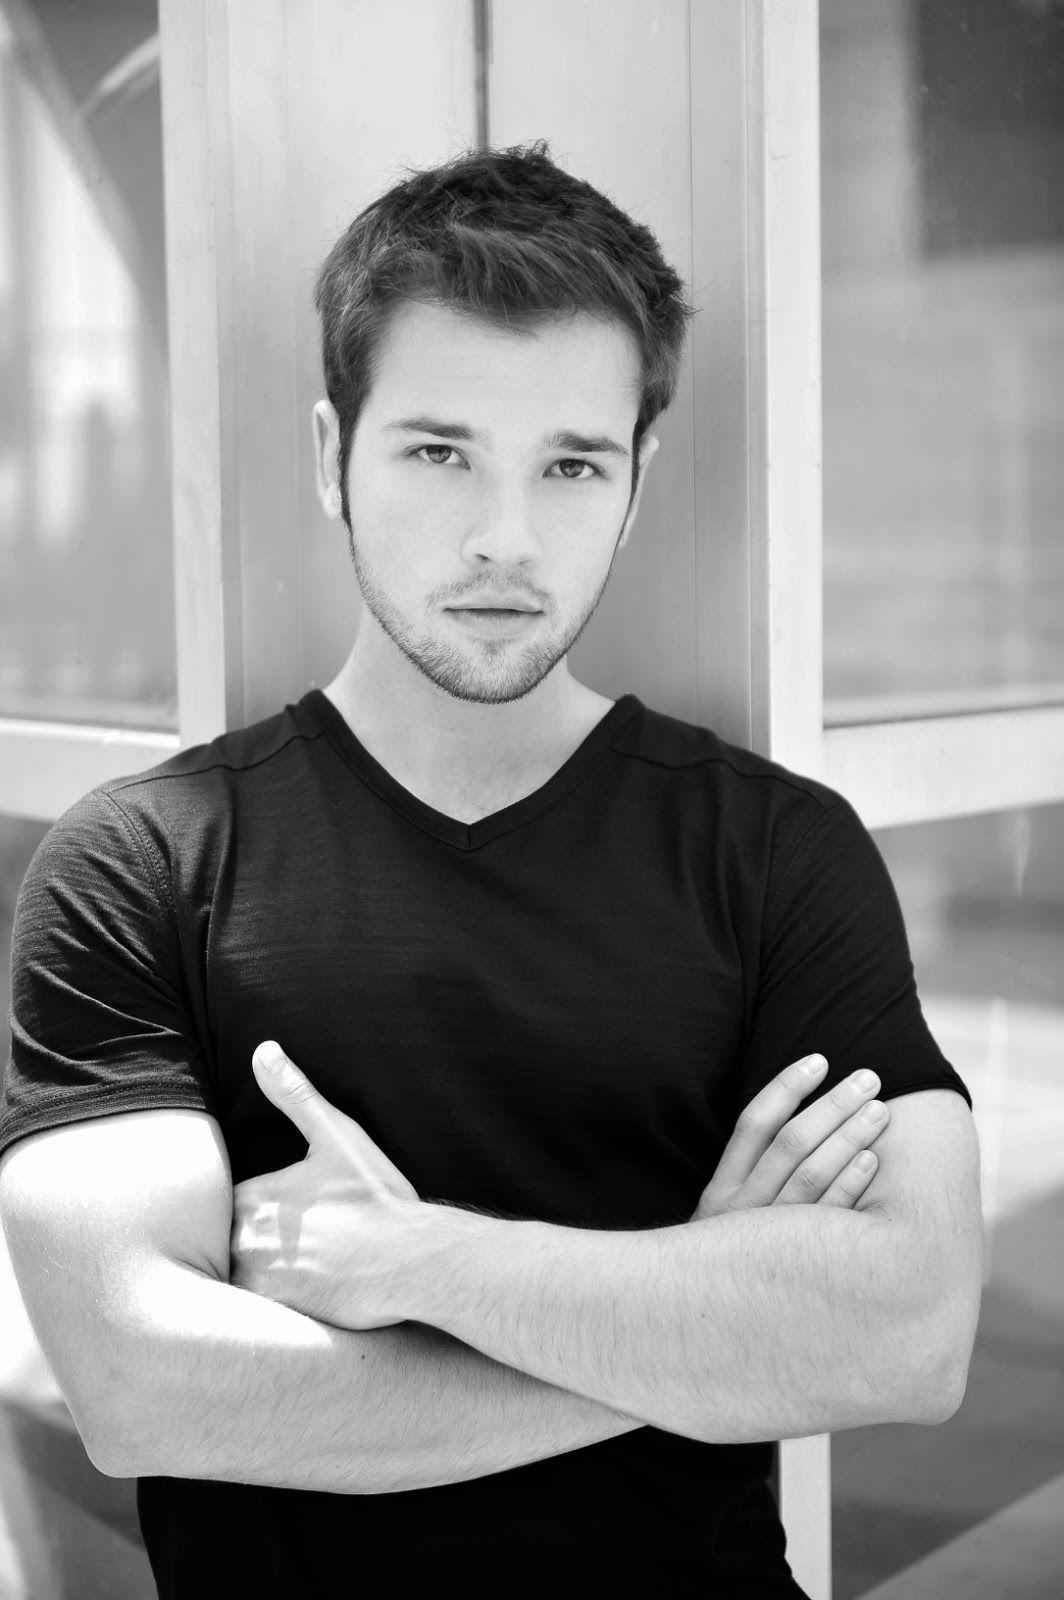 nathan kress then and now 2015. nathan kress ! nathan kress then and now 2015